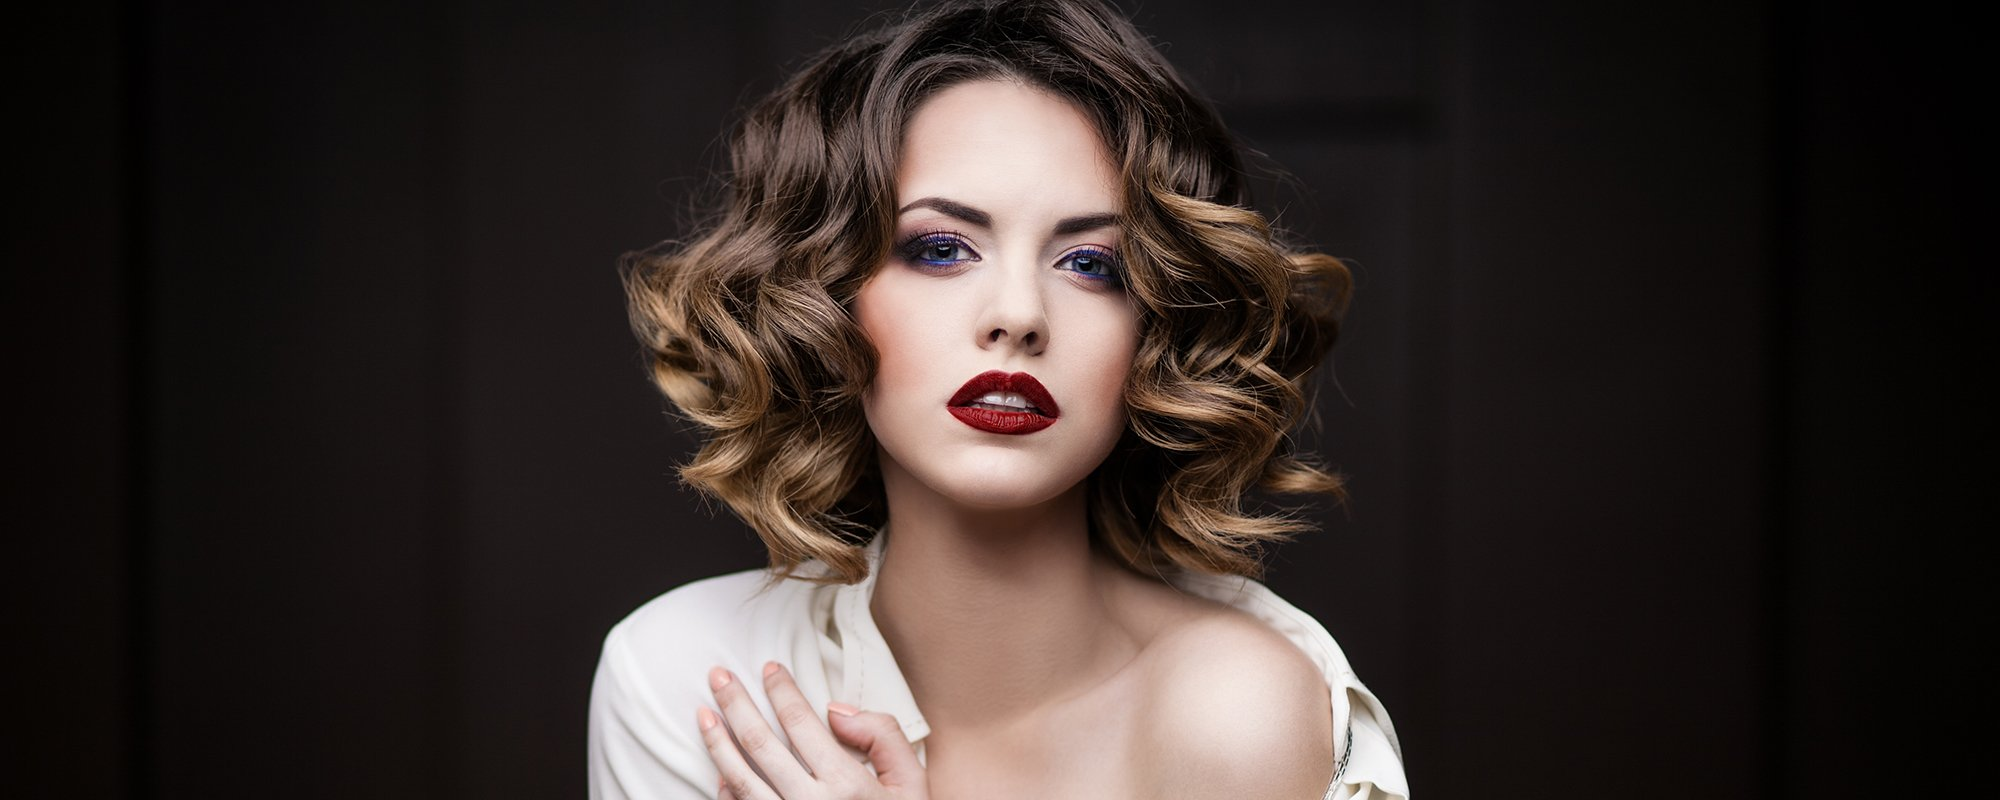 View of women with curled hair styled by A Cut Above hairdressers